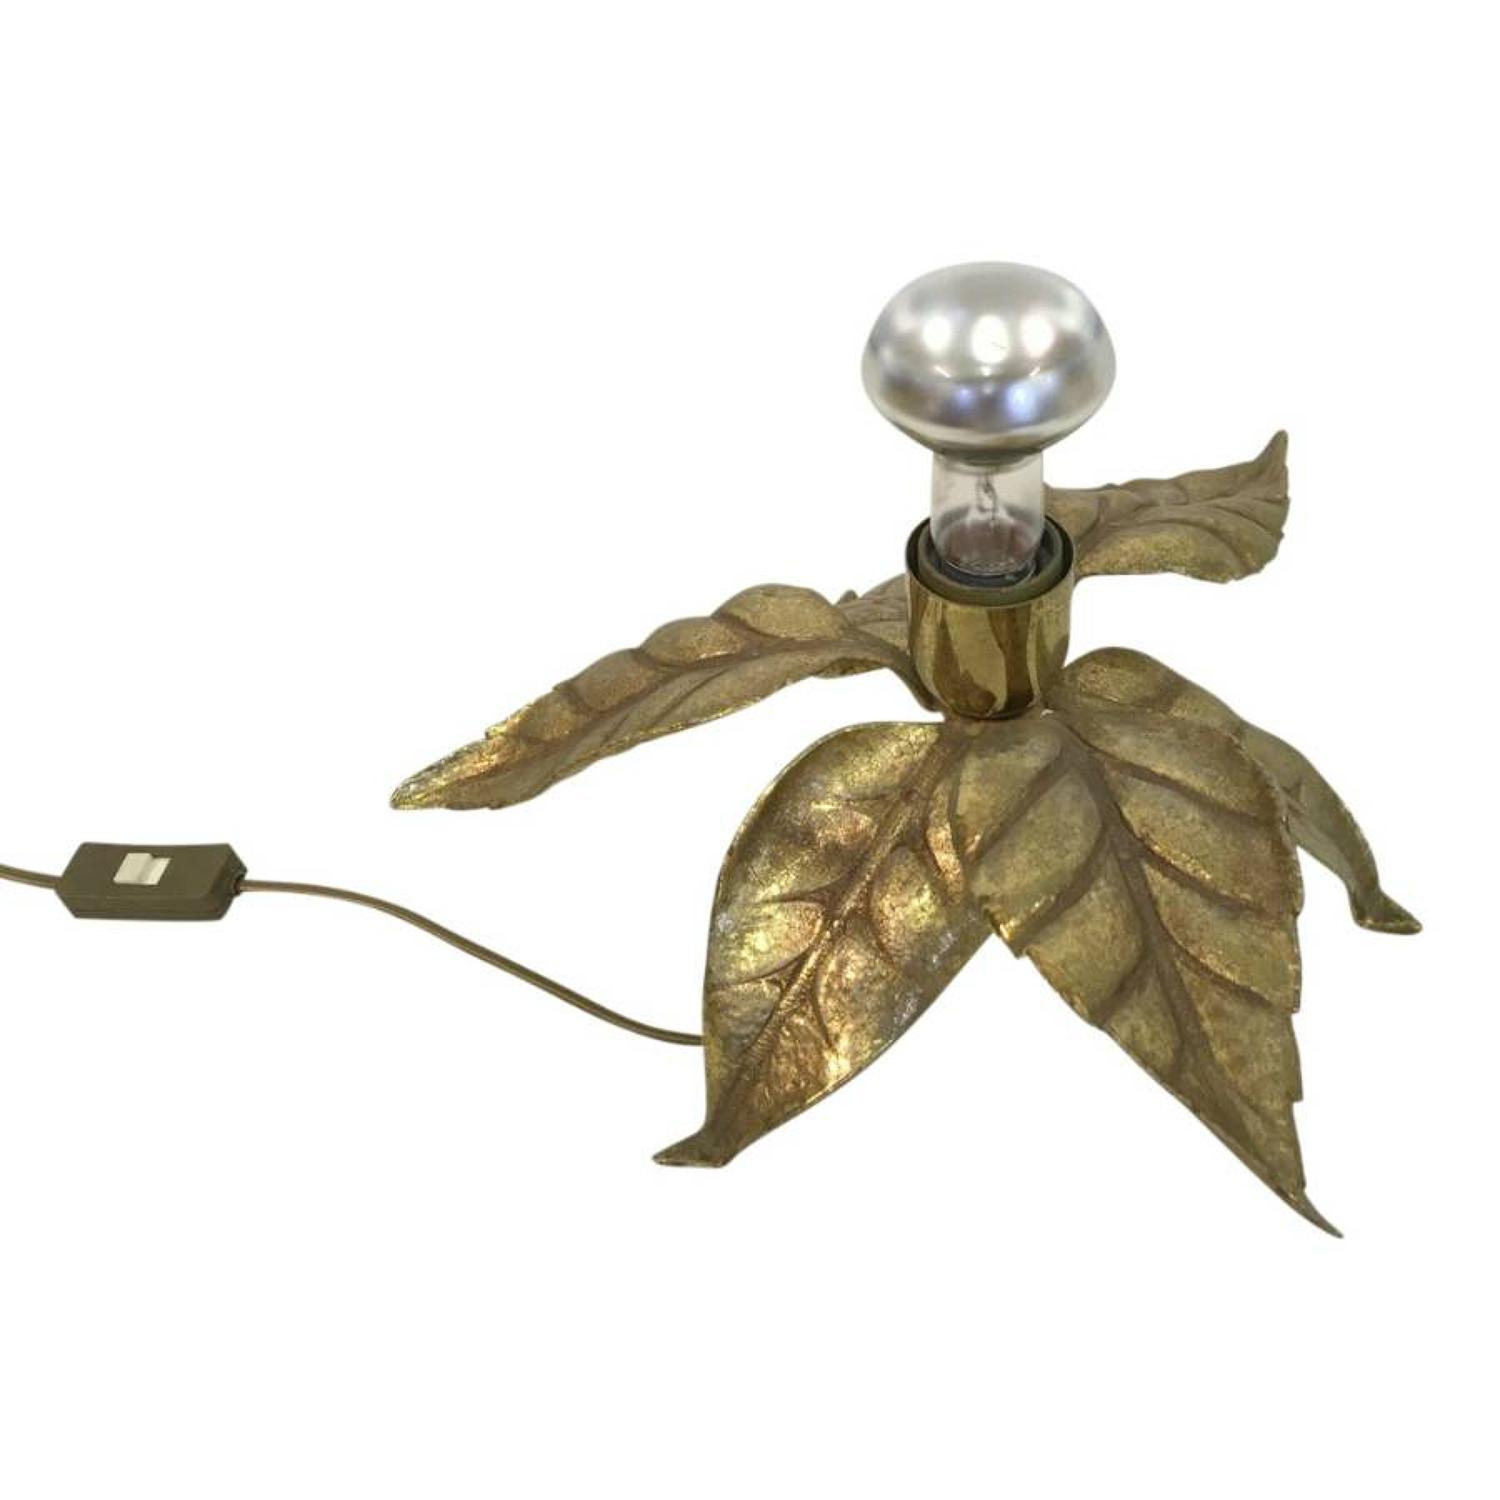 1970s brass flower table lamp by Massive